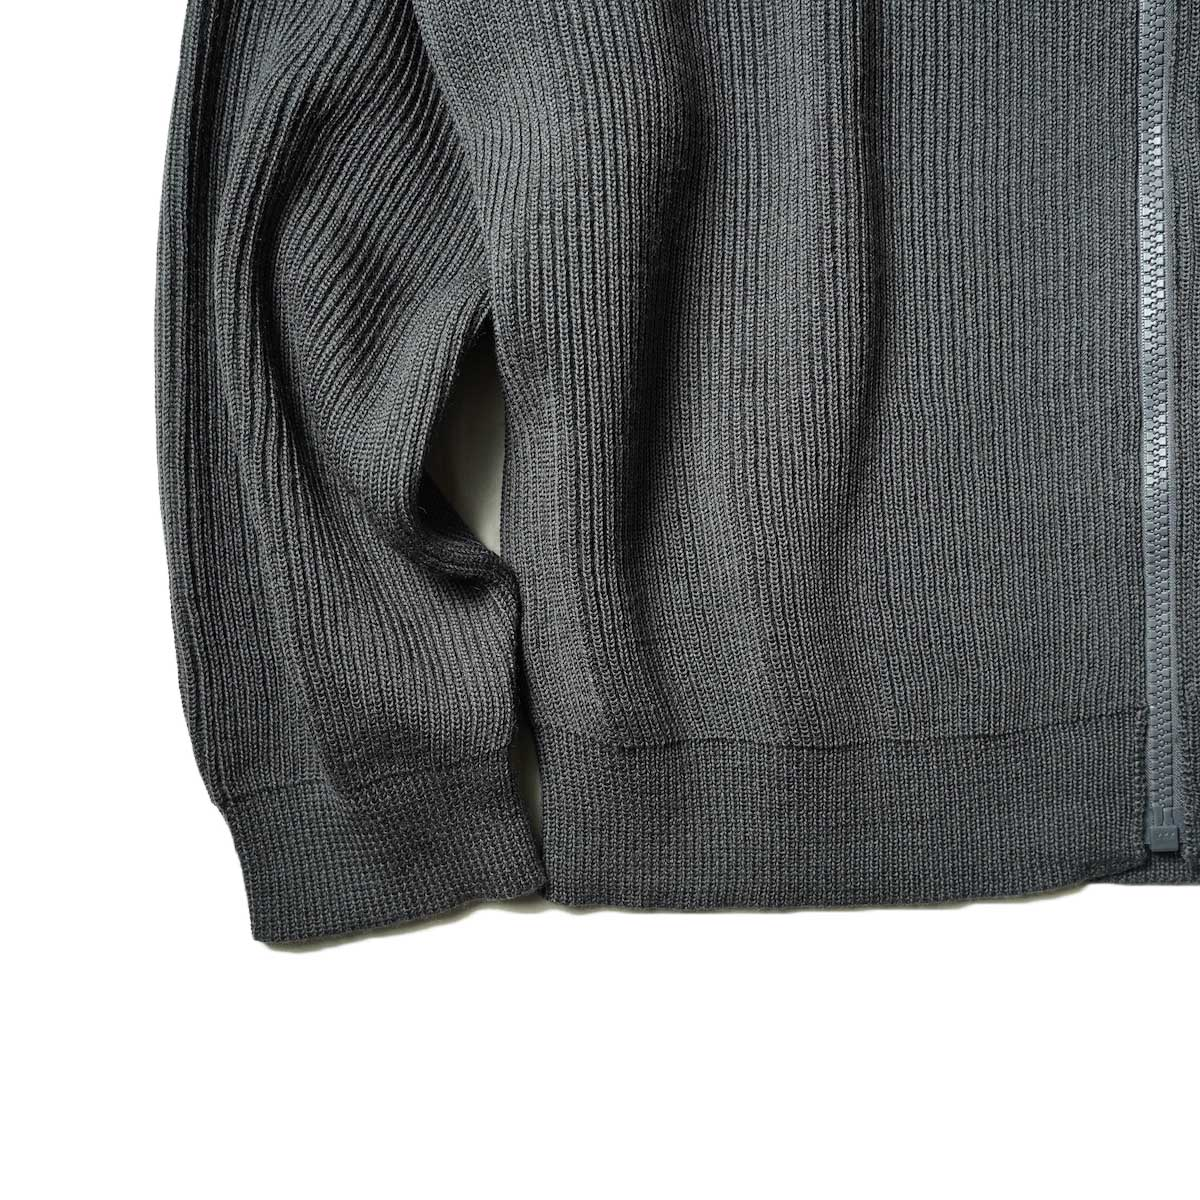 EVCON / DRIVERS SWEATER (Charcoal) 袖、裾